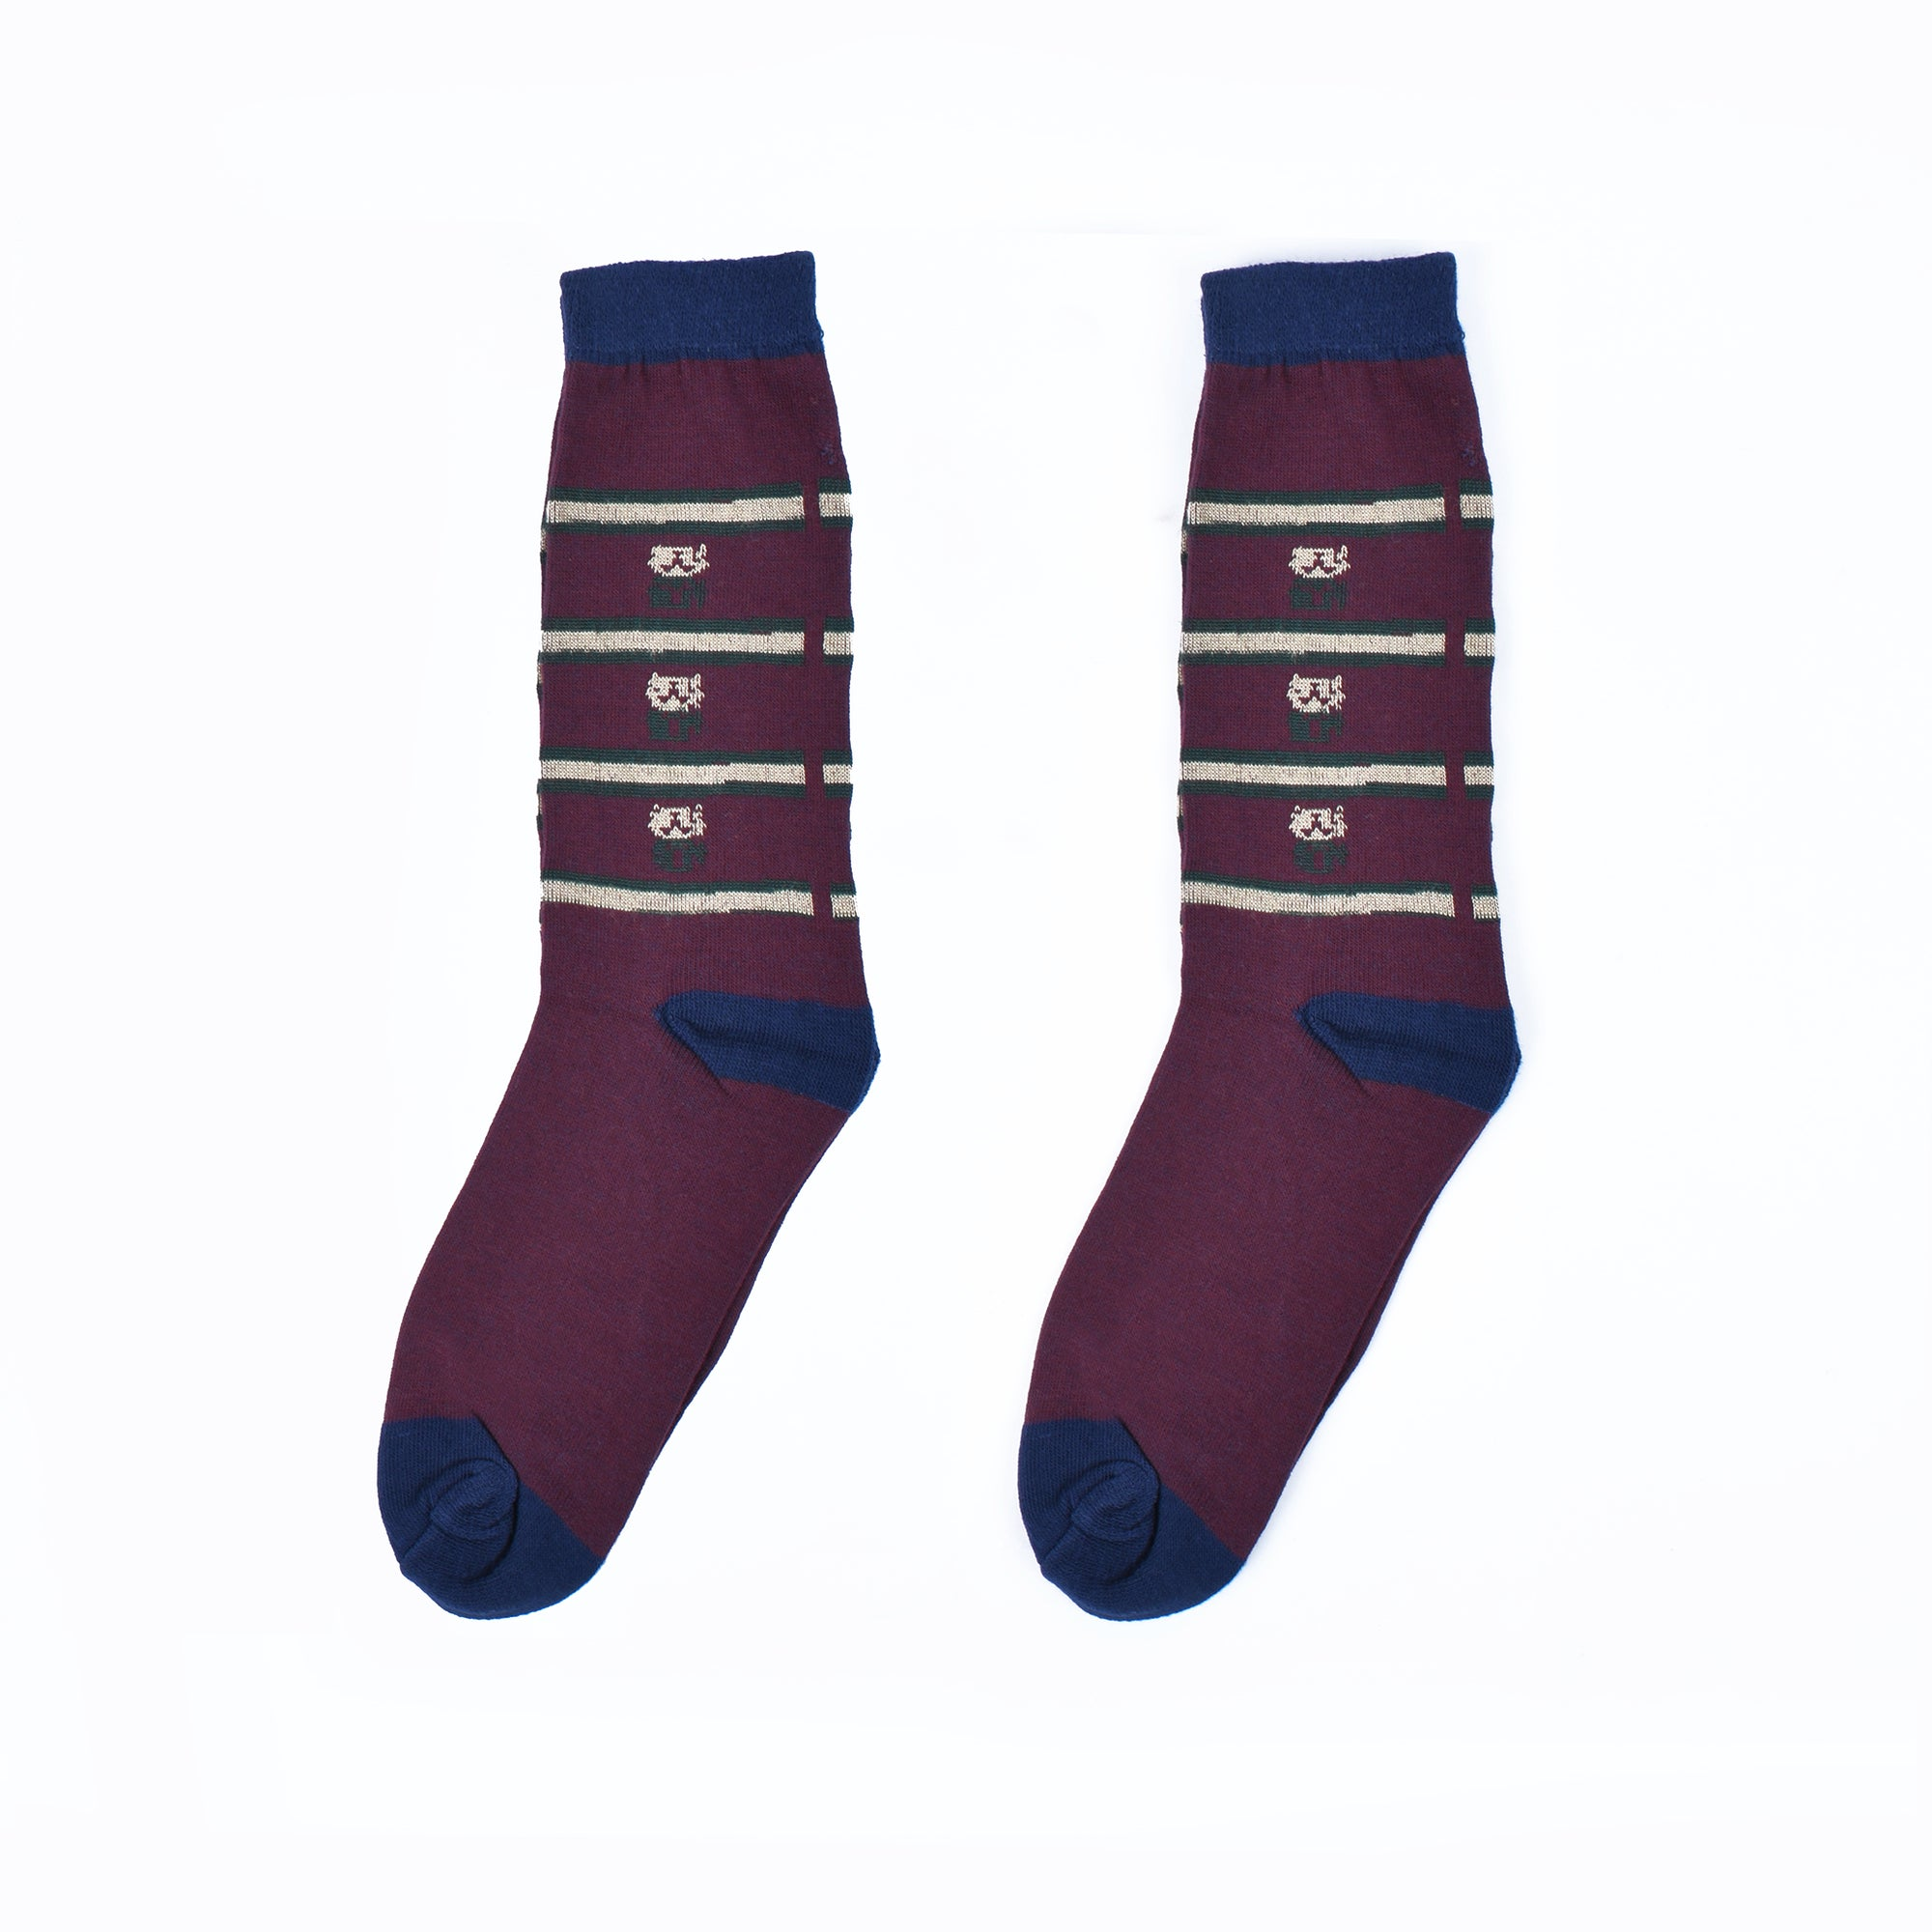 Casual Socks For Men-Assorted-NA7179